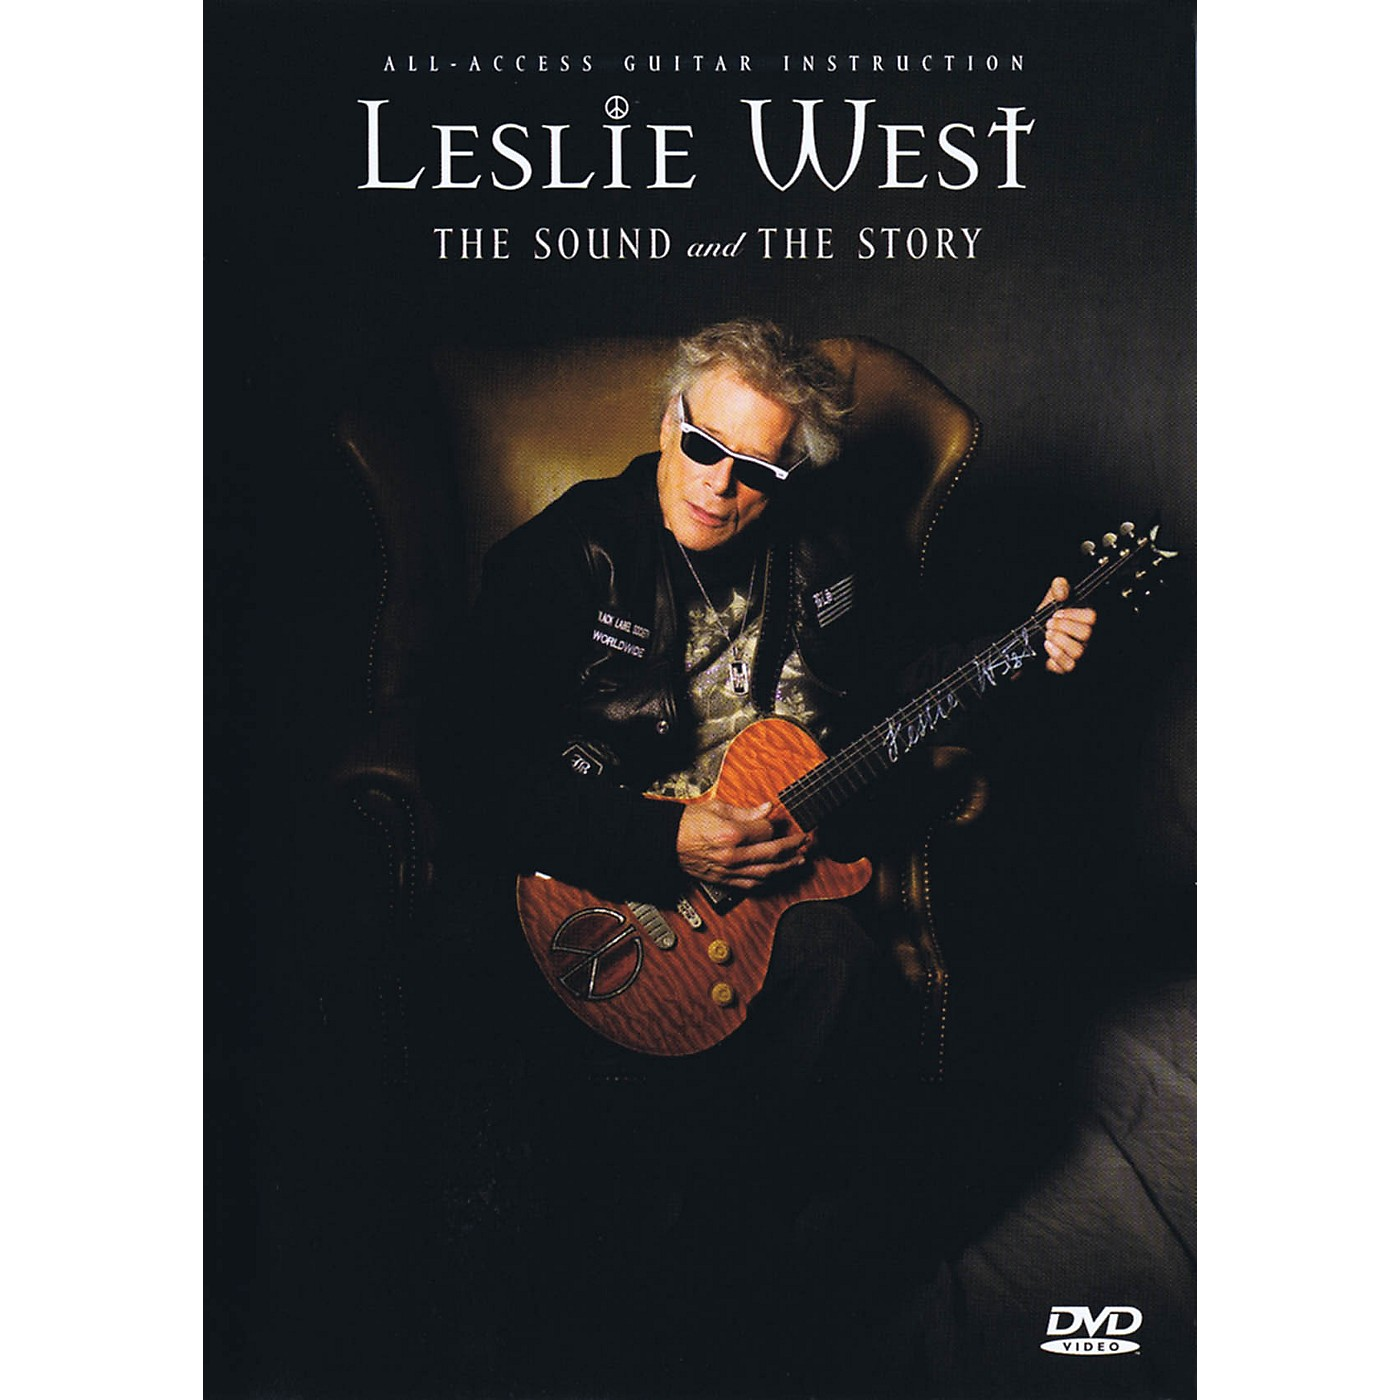 Fret12 Leslie West: The Sound And The Story - Guitar Instruction / Documentary Dvd (pal Ed.) Instructional/Guitar/DVD DVD by Leslie West thumbnail